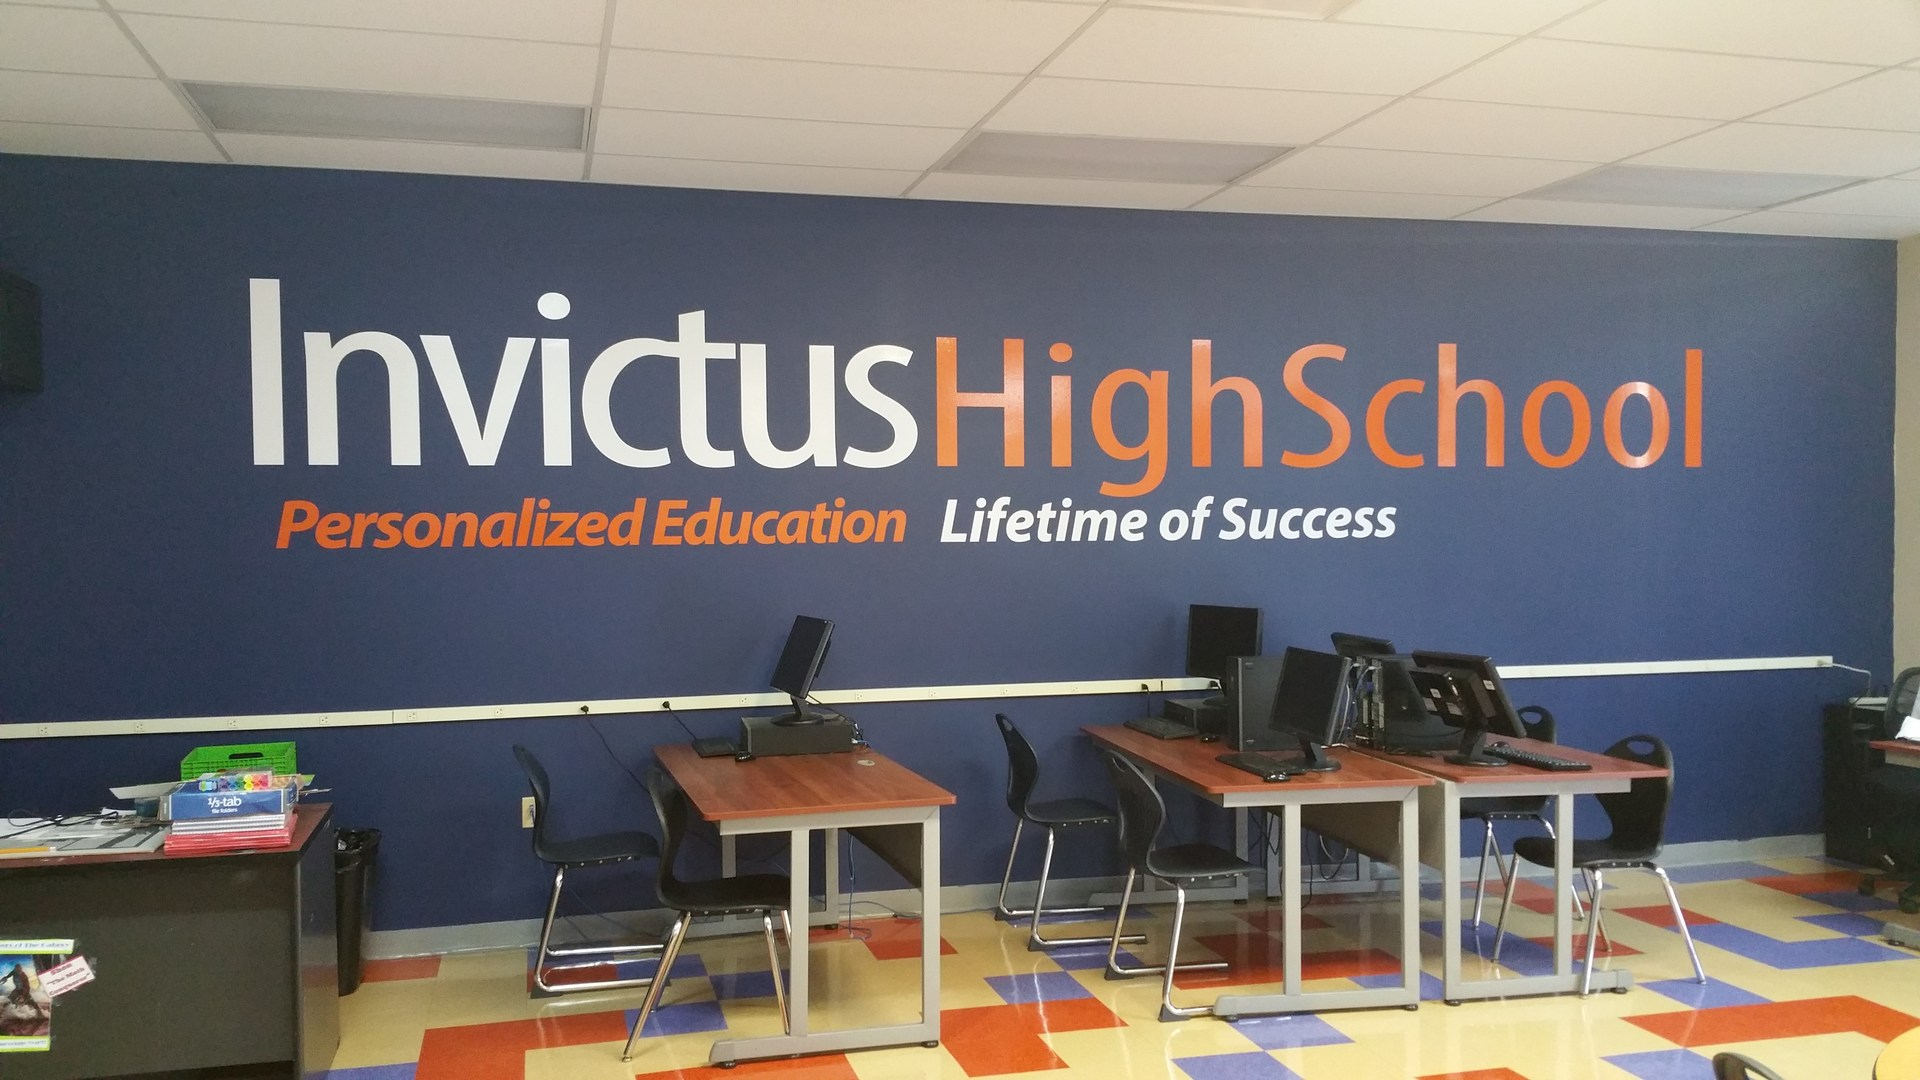 Invictus High School Downtown Cleveland Classroom